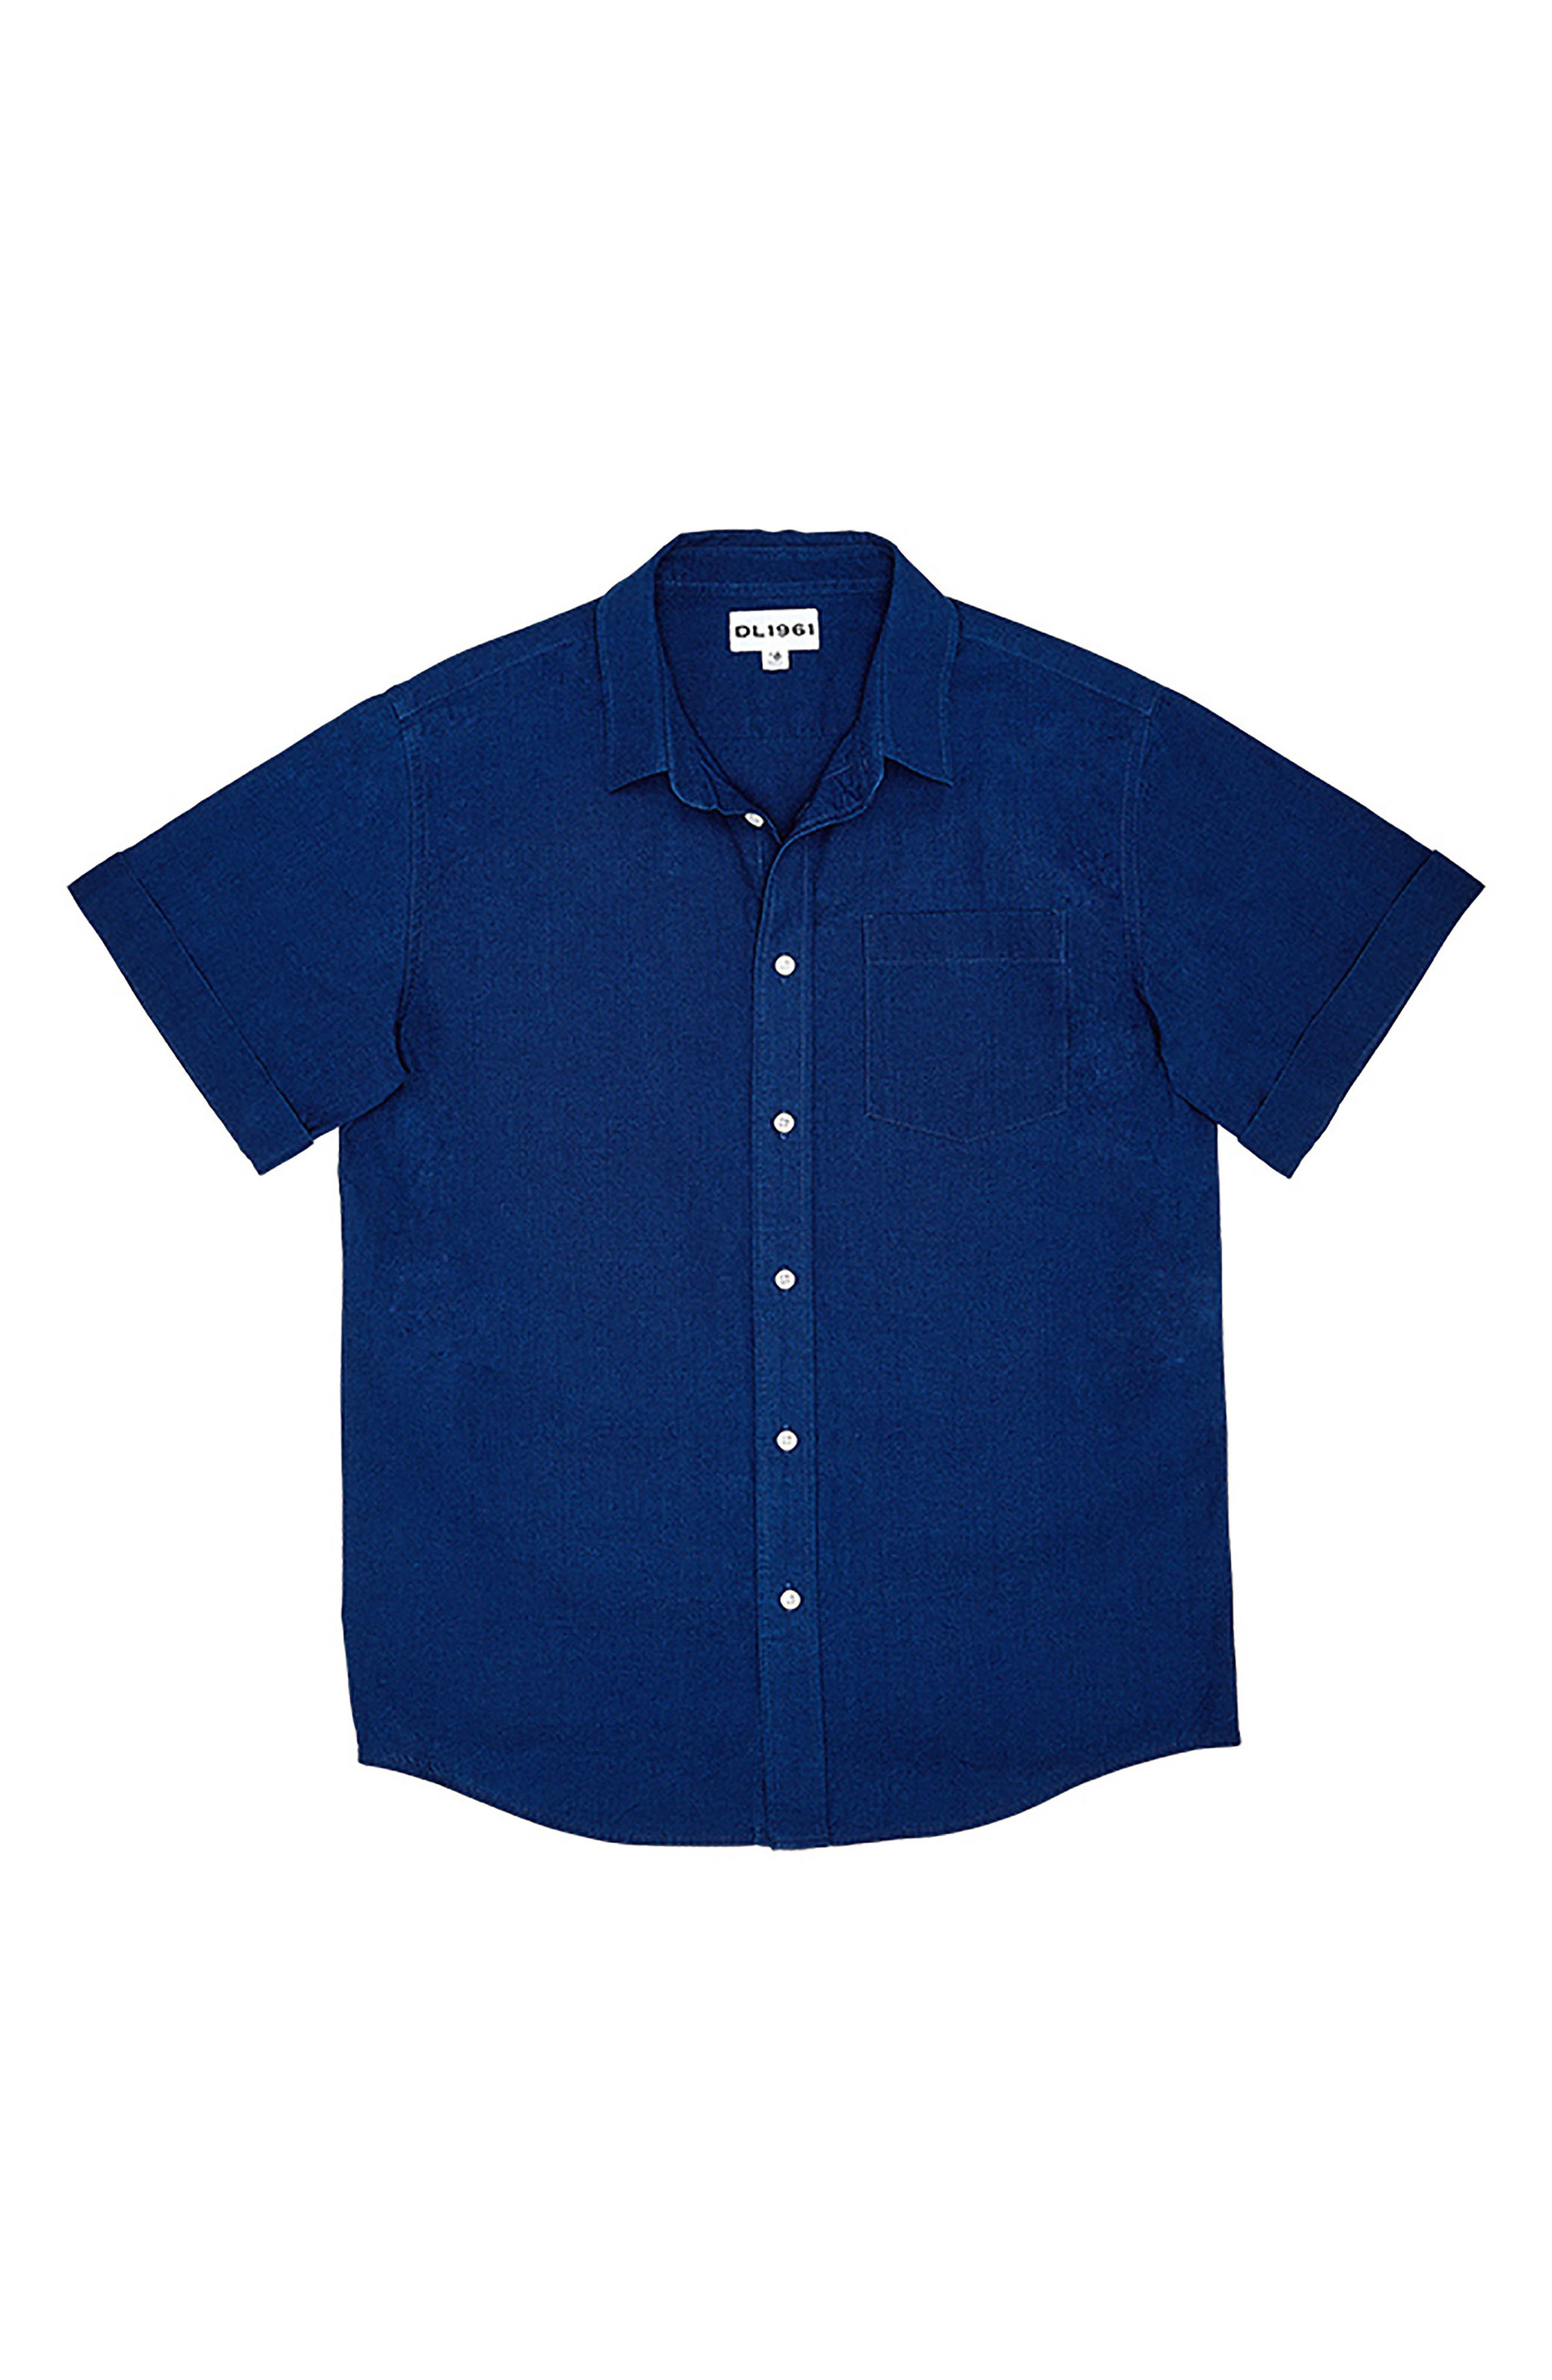 DL 1961 Ash Woven Shirt,                             Main thumbnail 1, color,